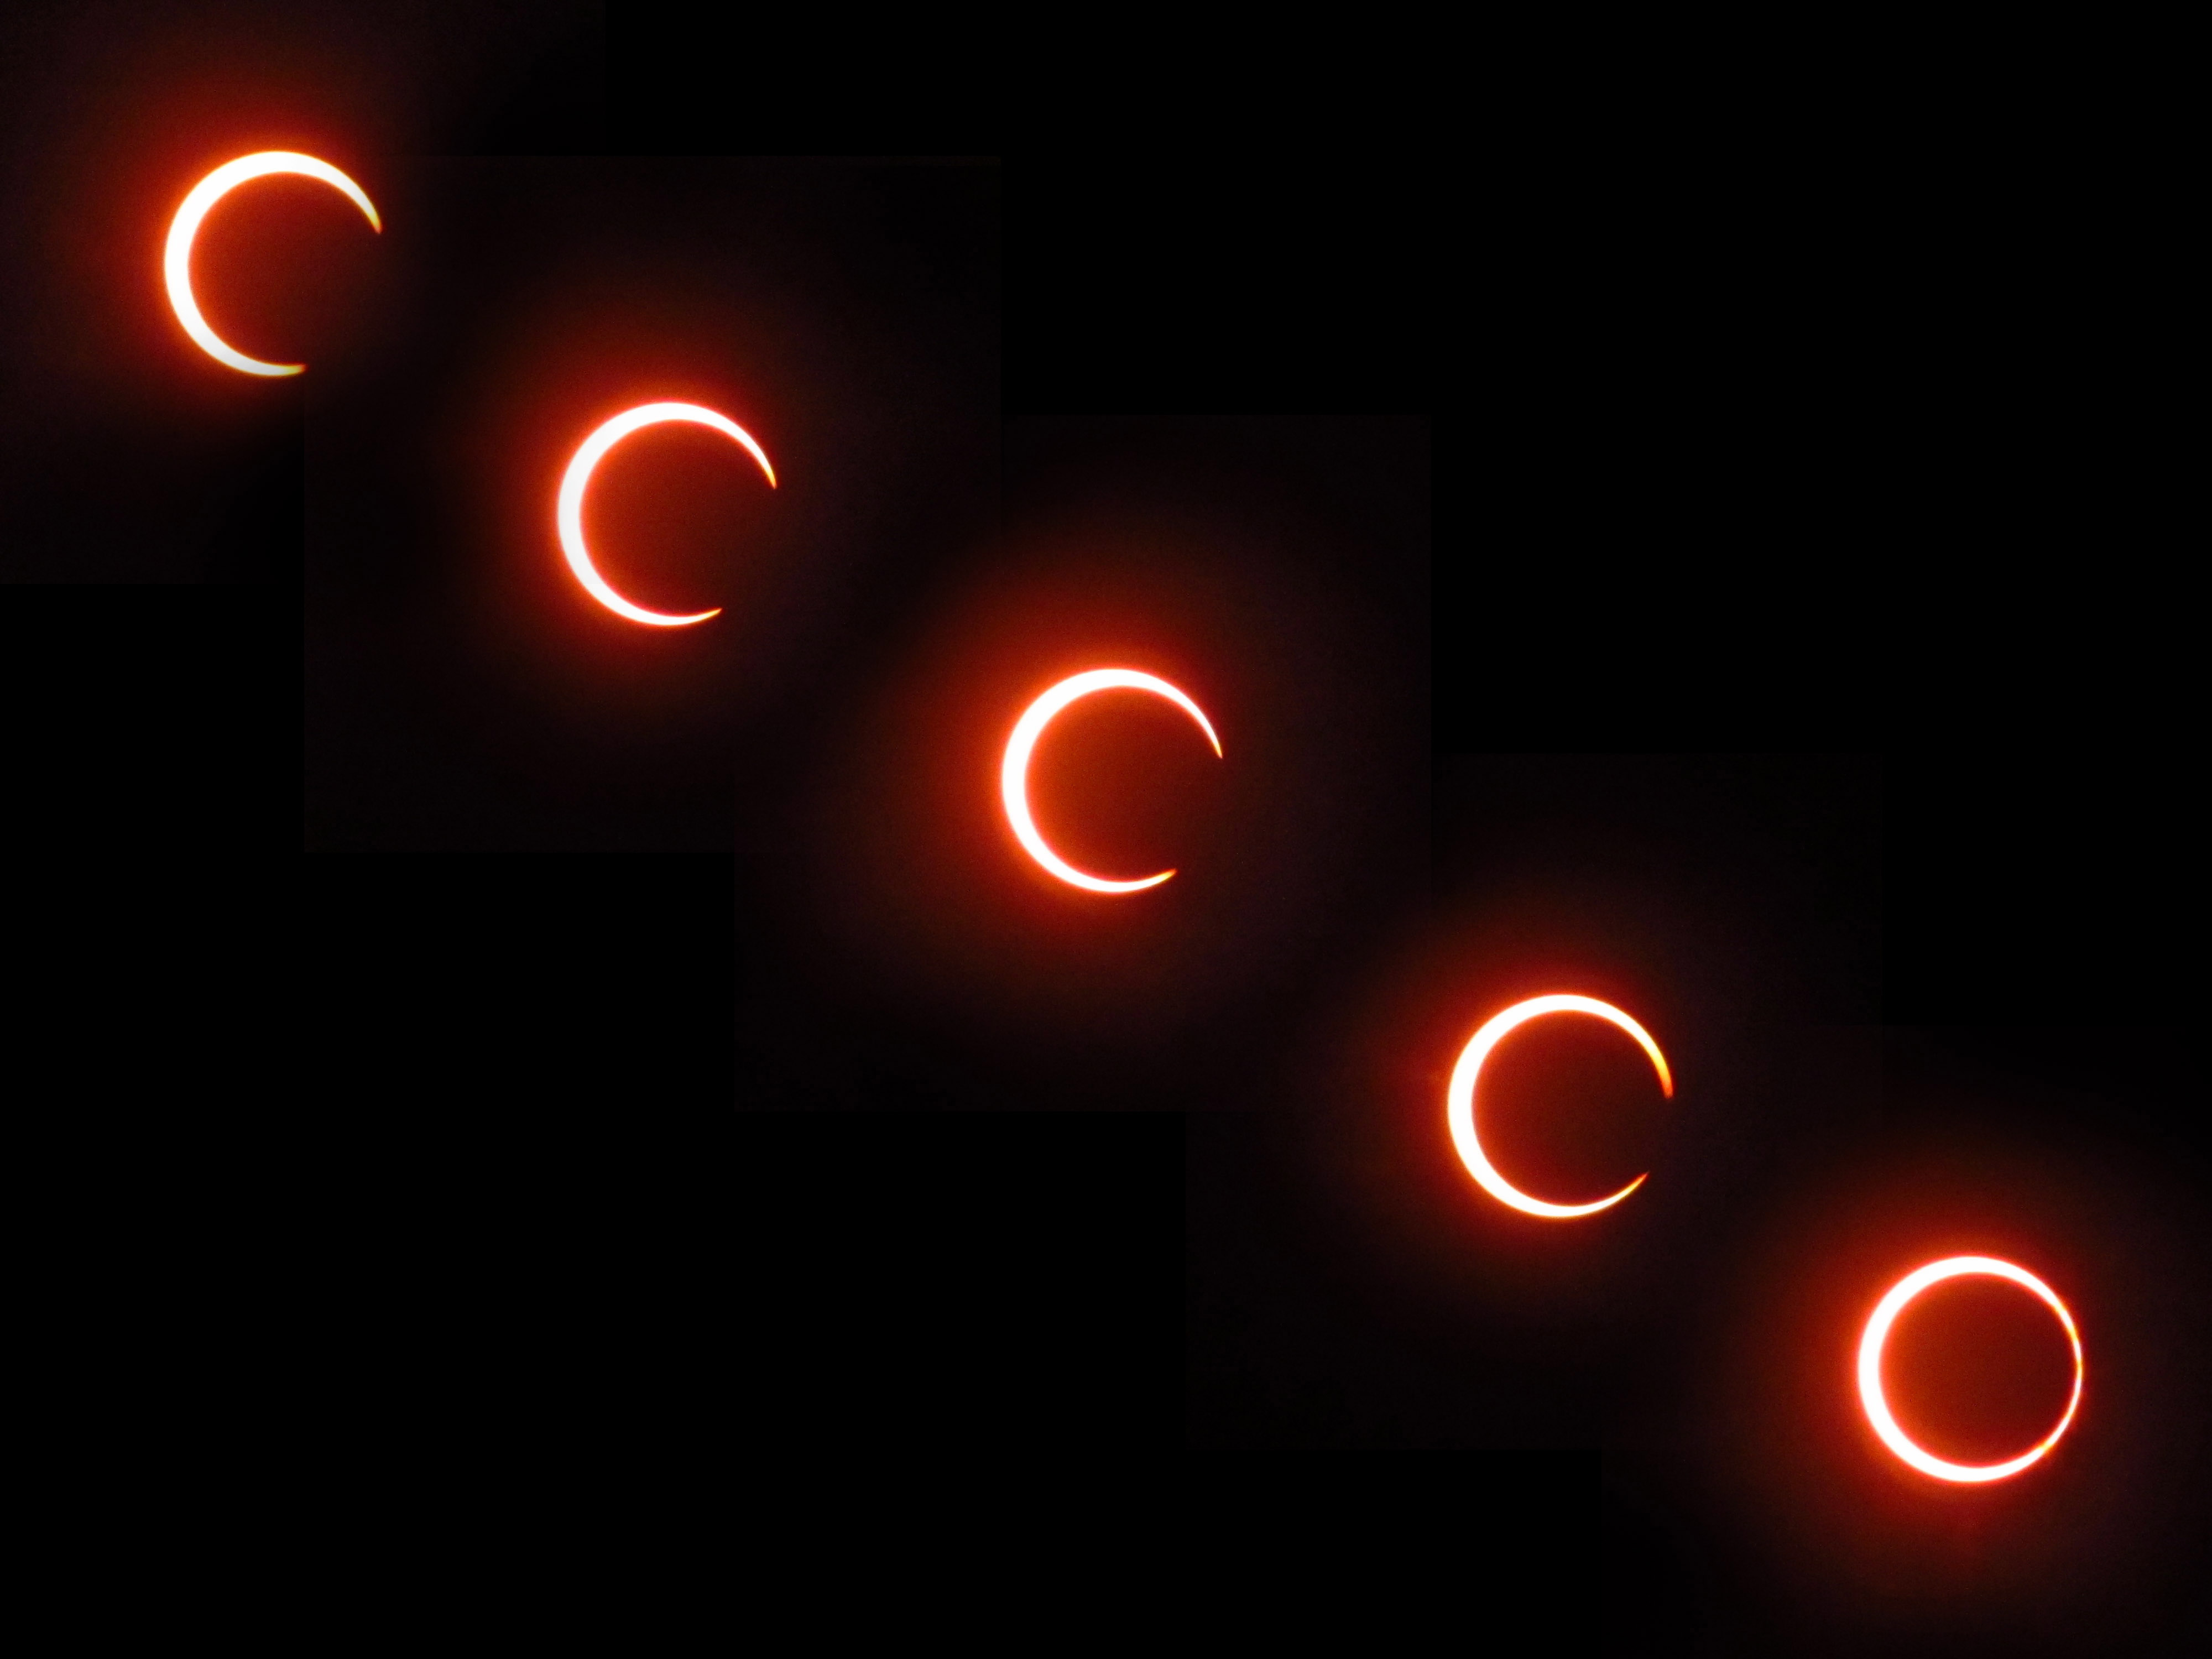 Eclipse - 03 photo